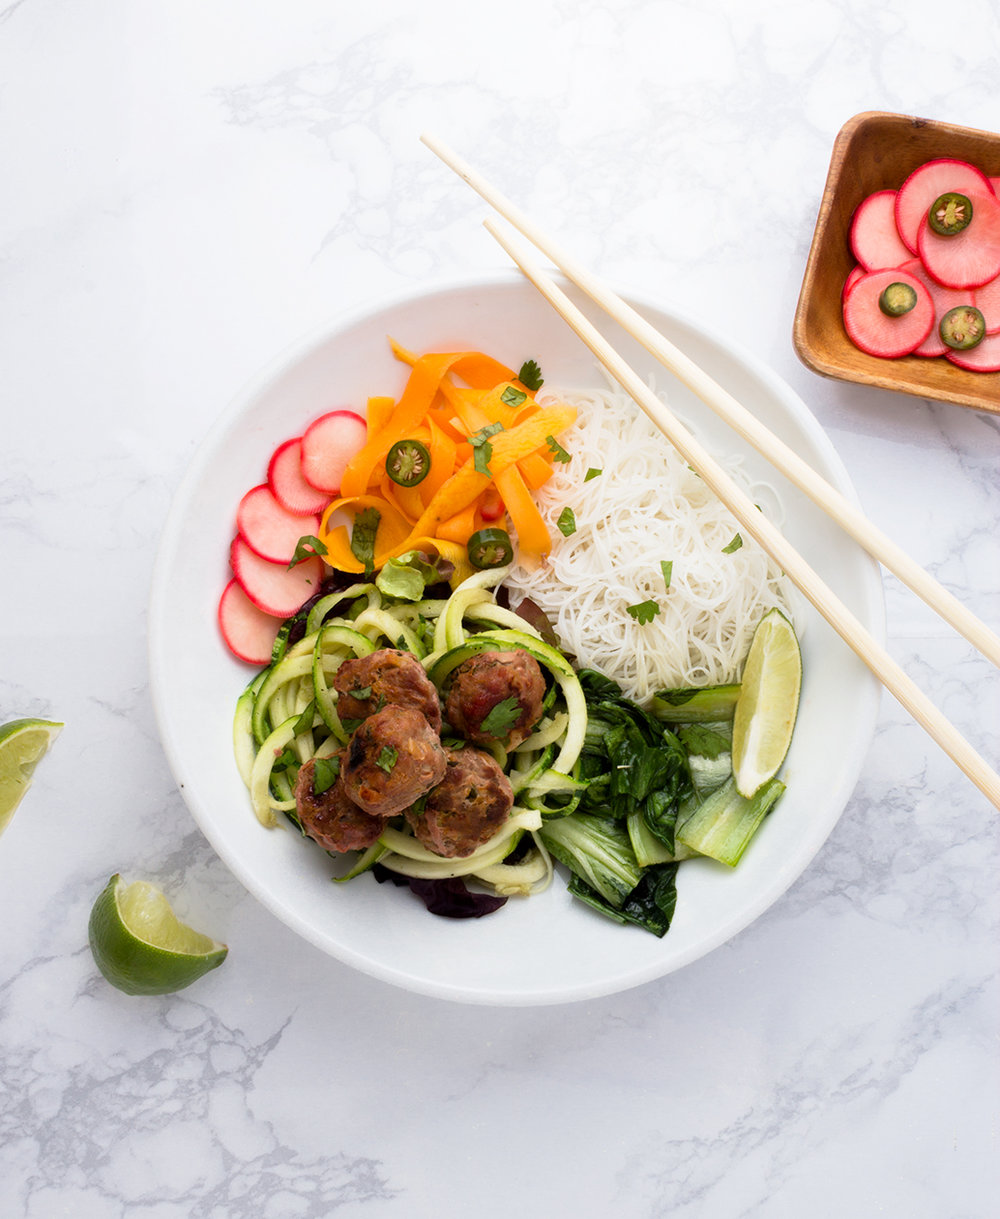 Build it how you want! Choose different ingredients to build your ideal Banh Mi Meatball Bowl.